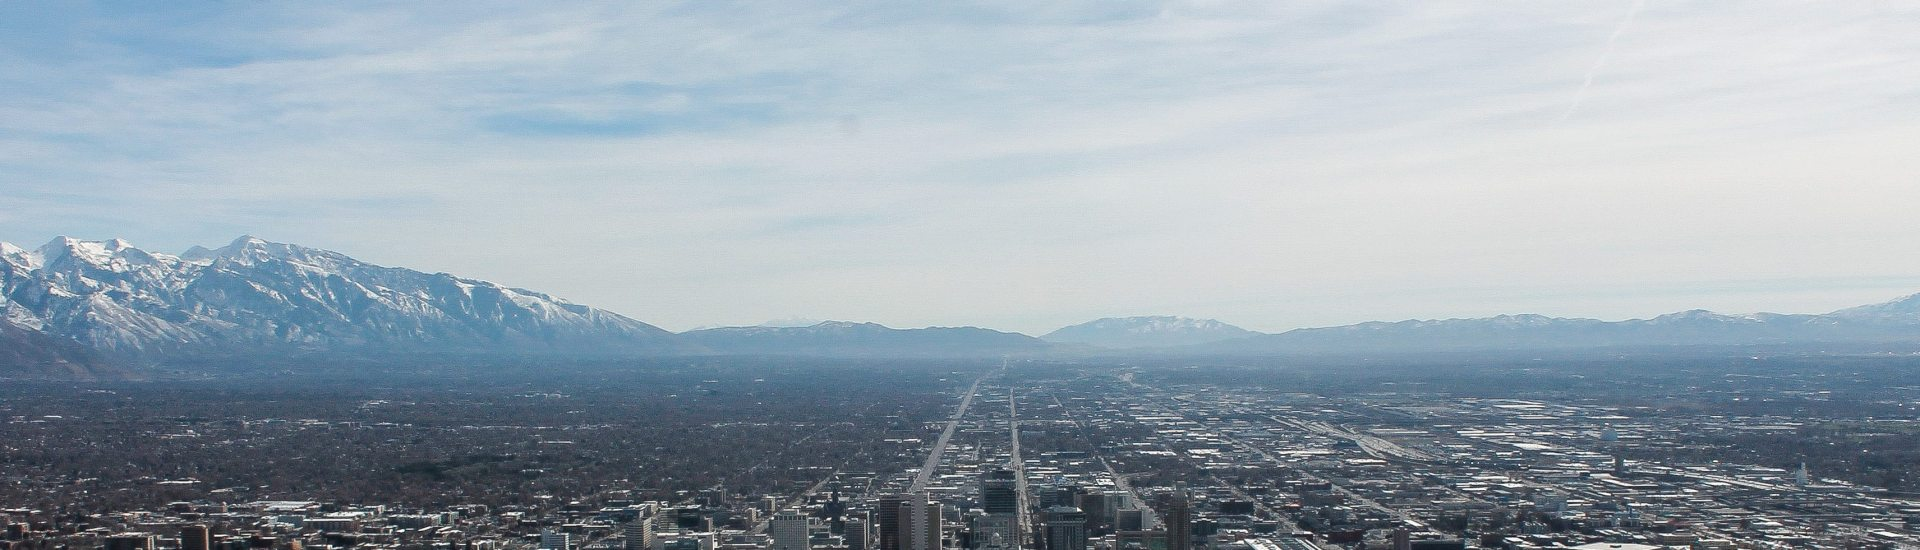 Salt Lake City from above. More posts from this place to come!